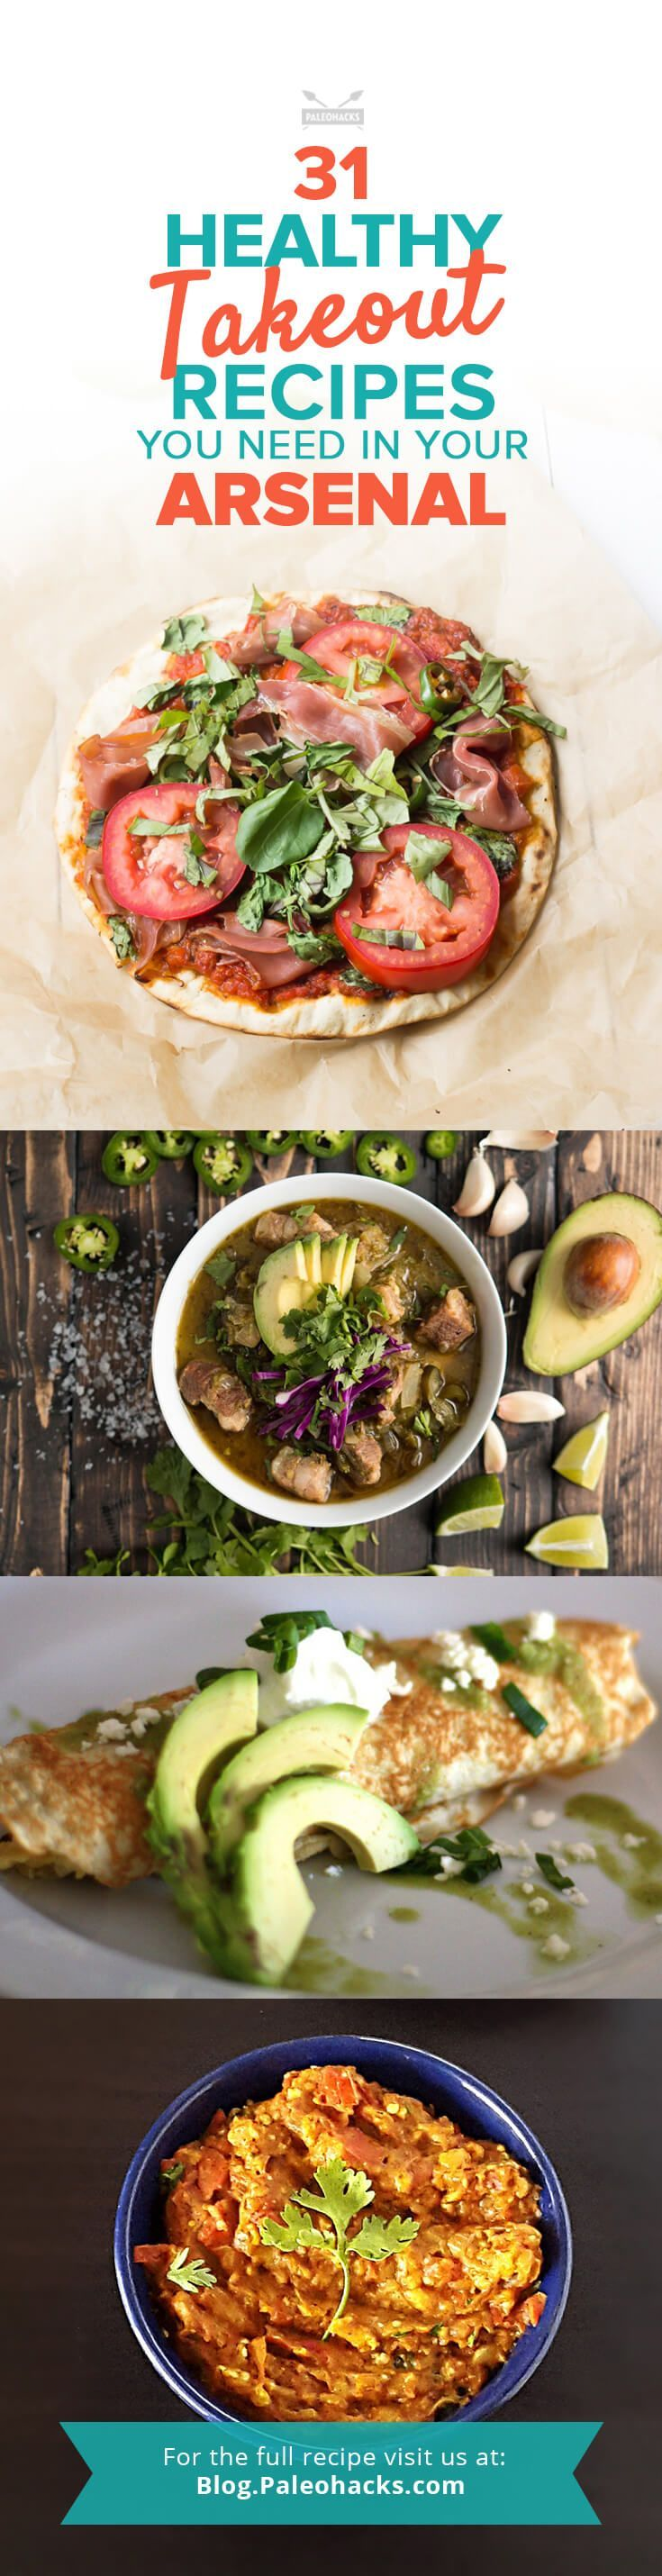 From savory chow mein to shrimp fried rice to sushi rolls and more, your favorite takeout dishes are easily made Paleo at home with a few substitutions. Even the most diehard Paleo devotee gets struck by a craving for some quick and dirty Chinese takeout, or a greasy spoon-style burger, or a taco truck's finest. For the full recipe compilation visit us here: paleo.co/... #paleohacks #paleo